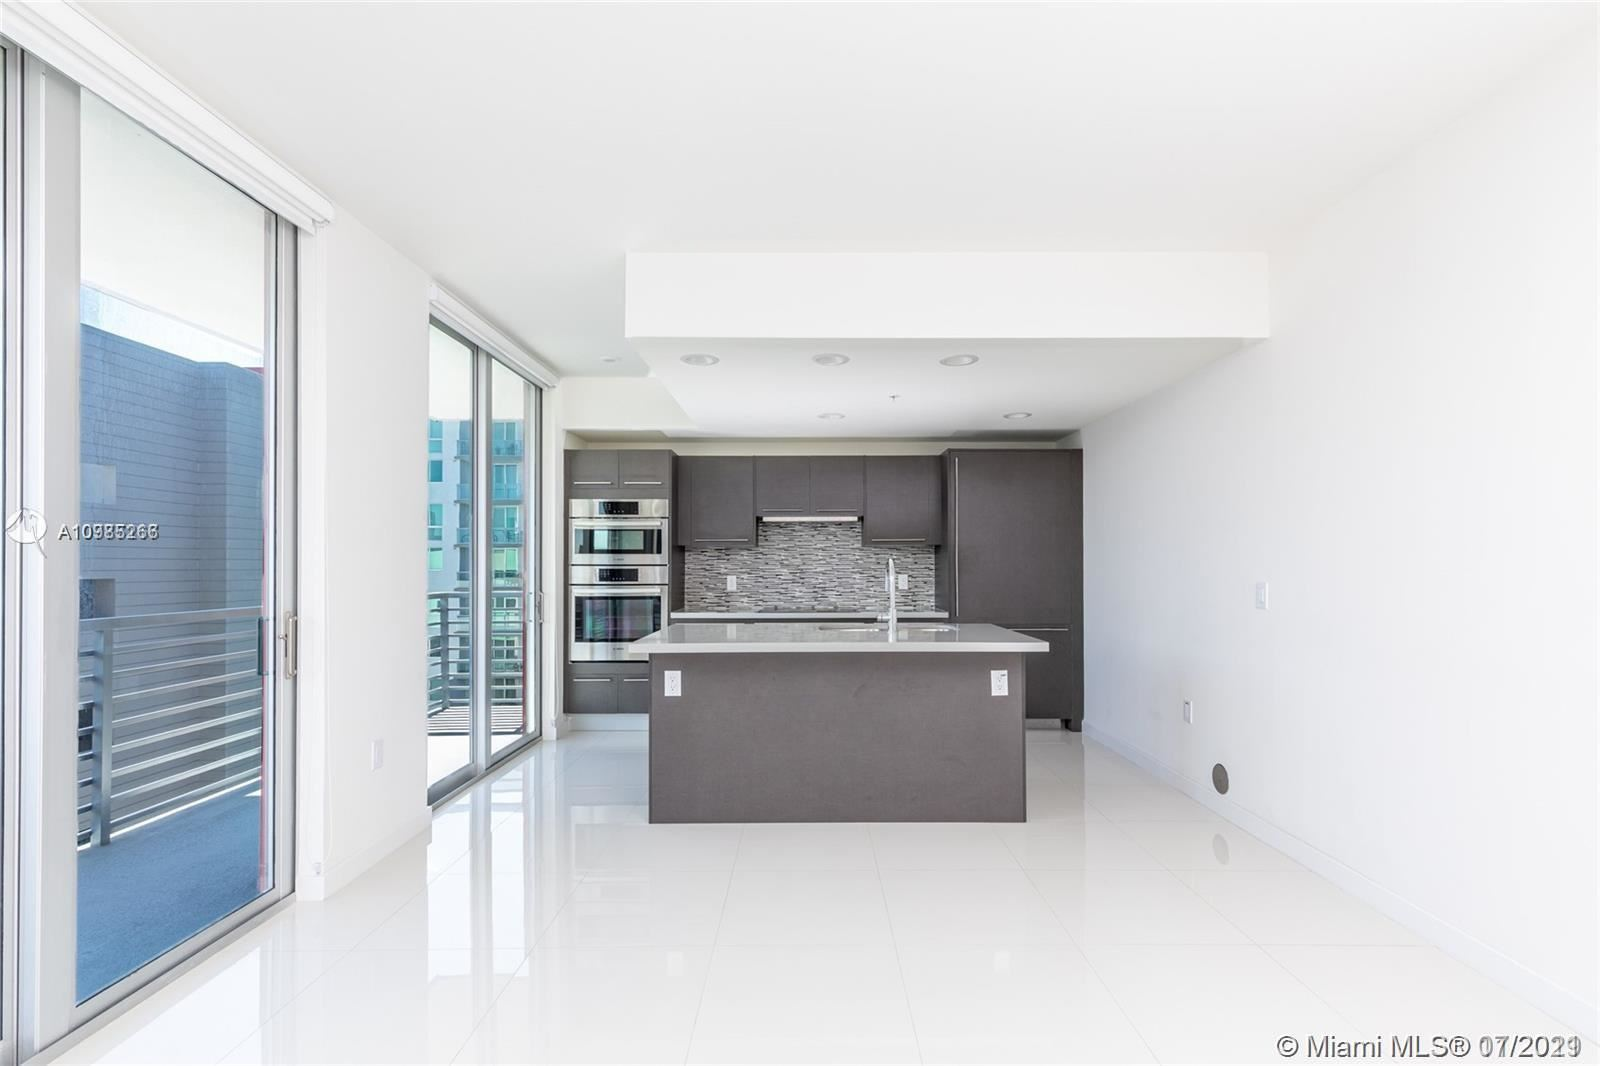 7875 NW 107th Ave #504, Doral, FL 33178 - #: A10985266